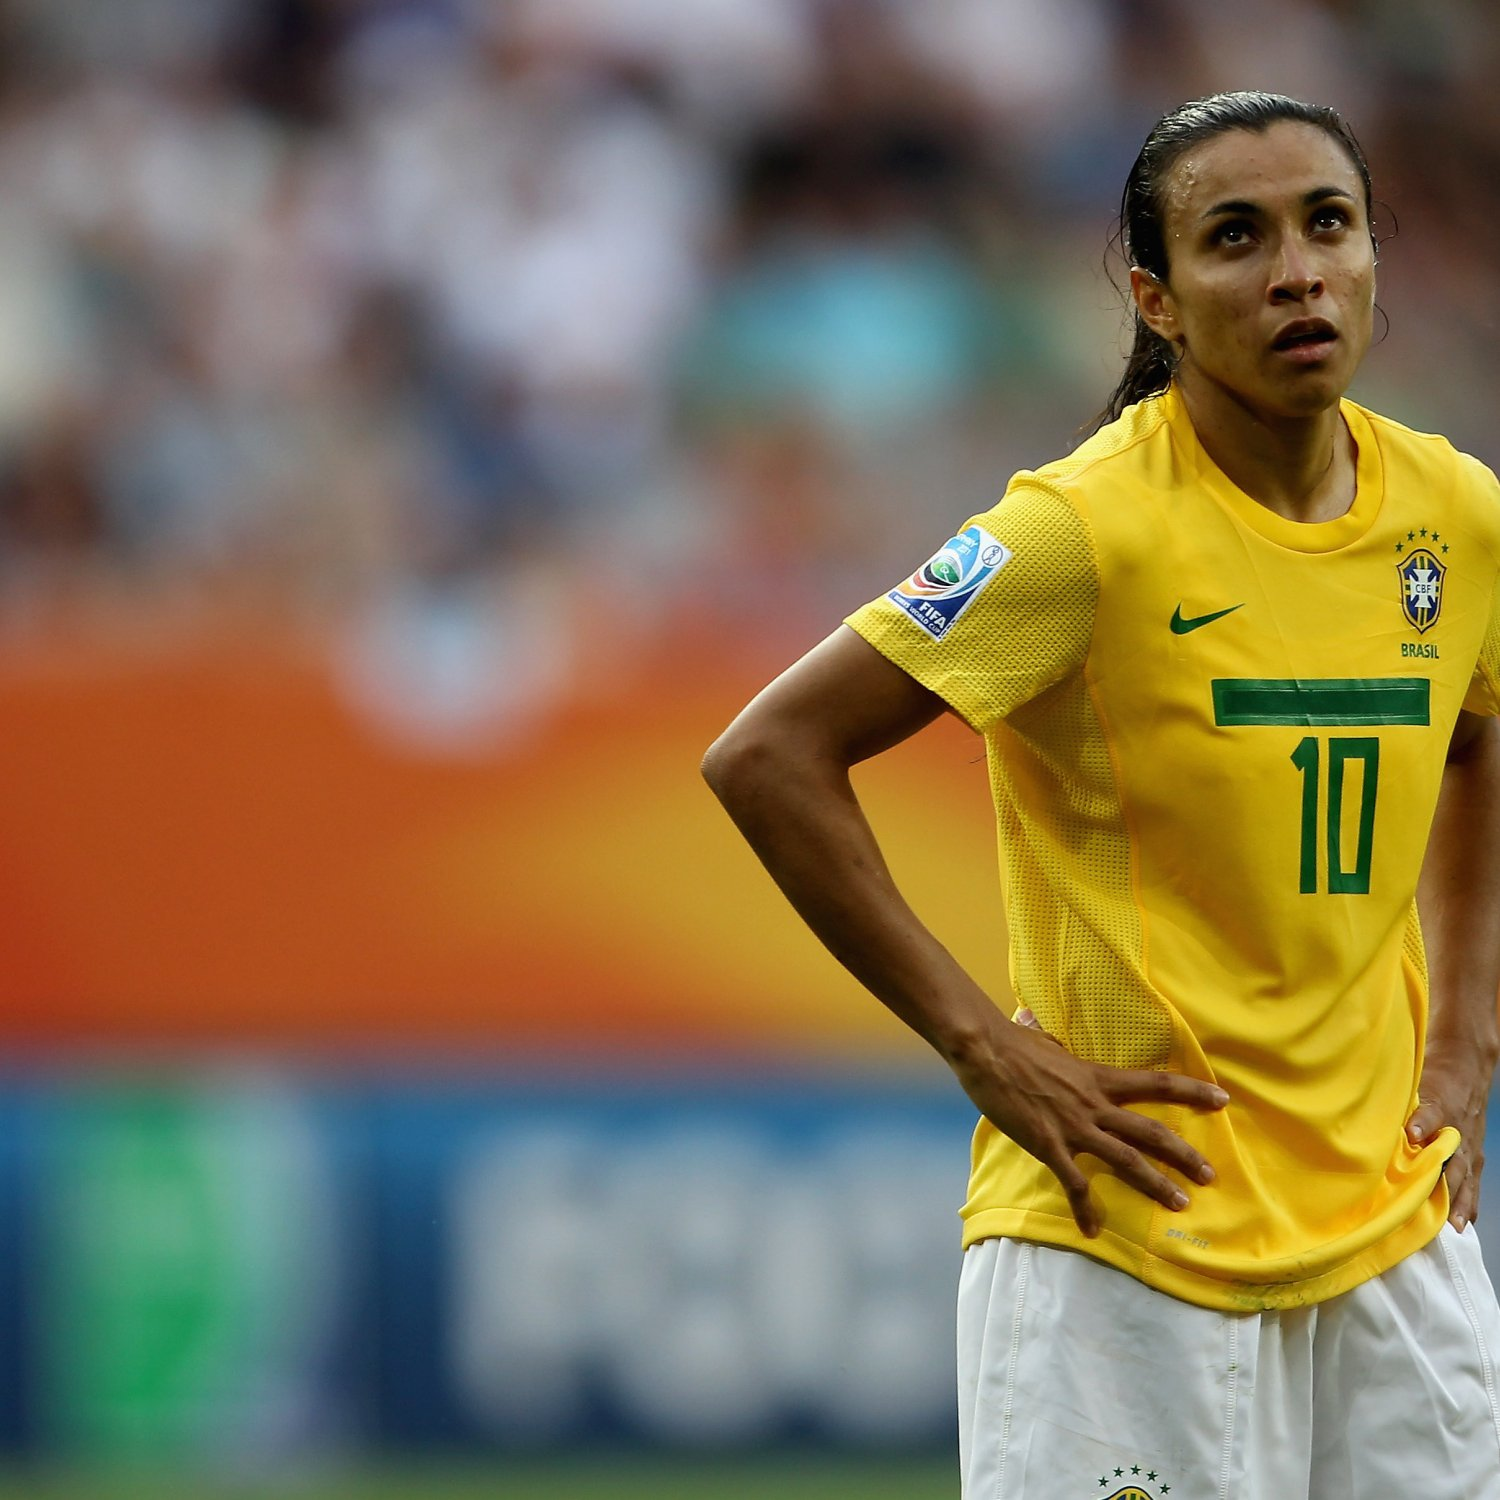 Campeonato Brasileiro Key Missing Players: Women's World Cup 2015: Brazil Team Guide